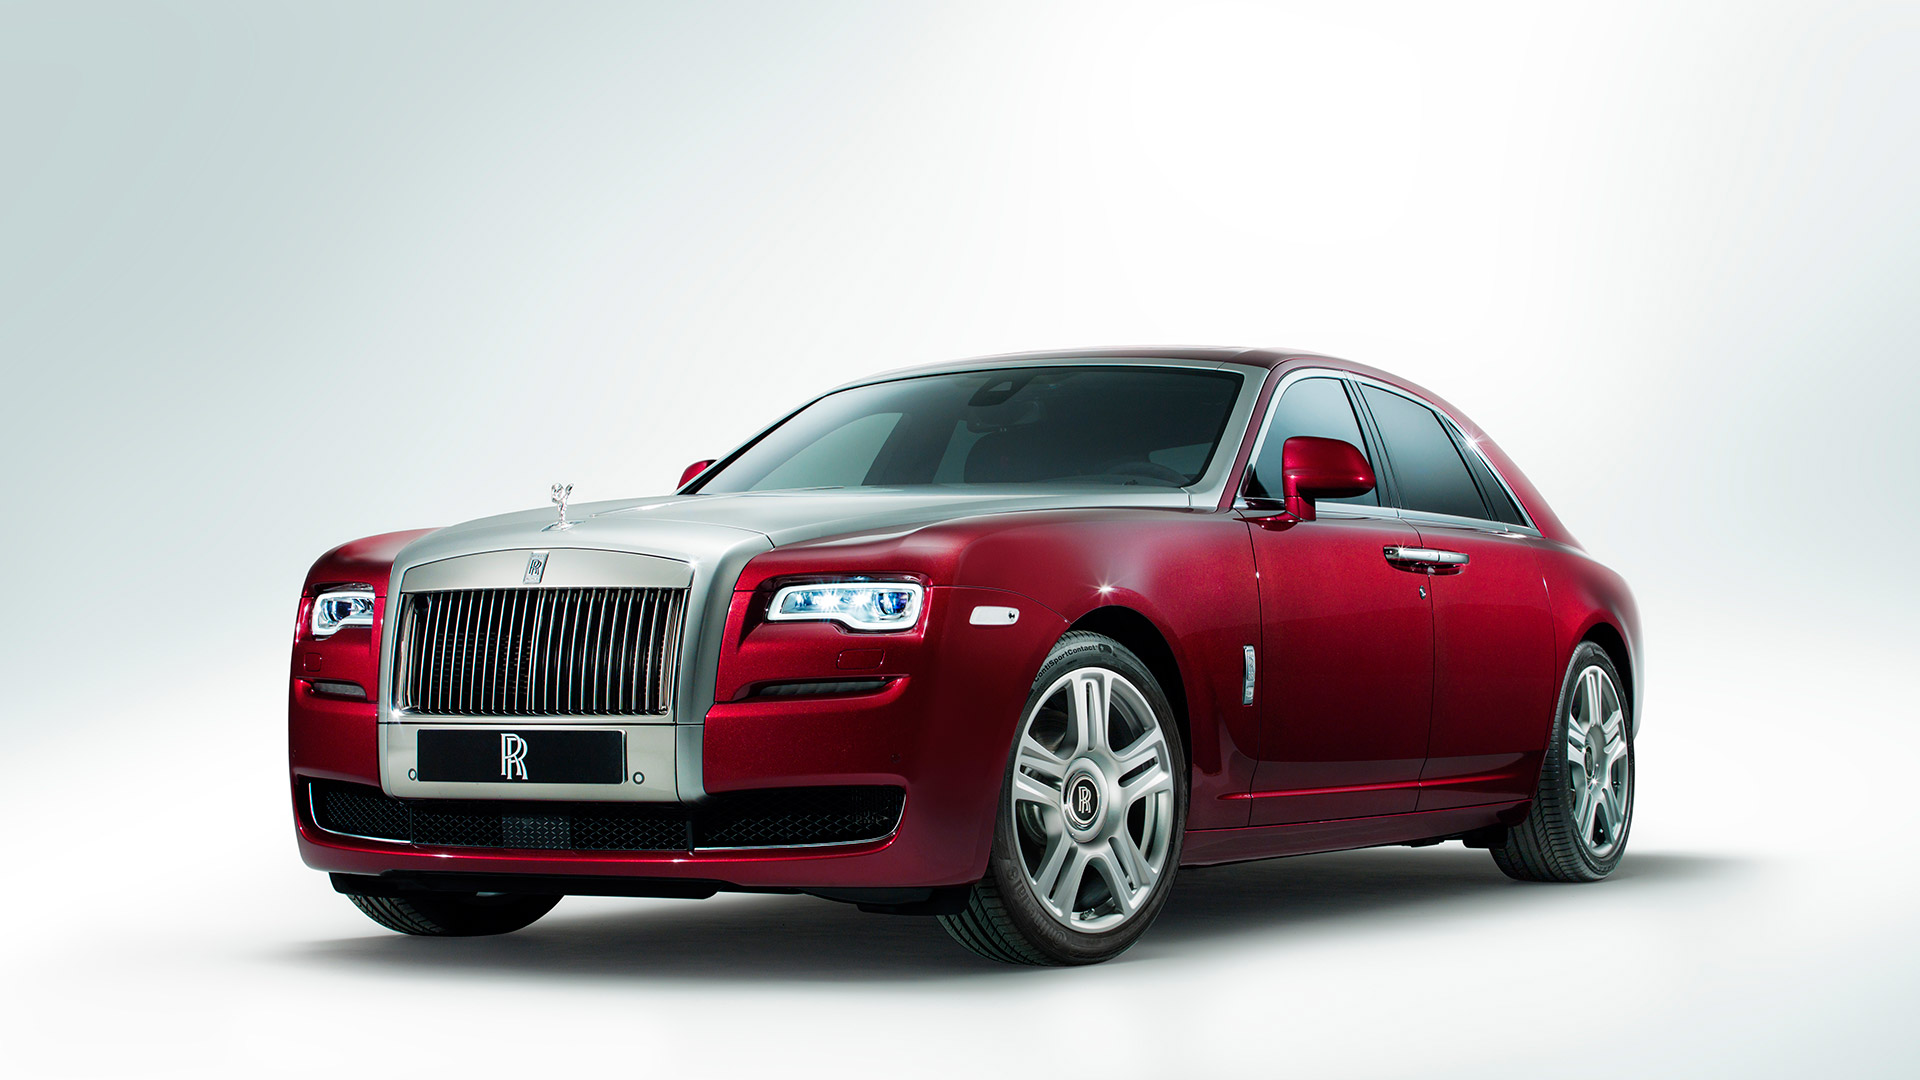 Luxurious! Rolls Royce launches its New Ghost Series II @ Rs 4.5 Crore Specification Features Images